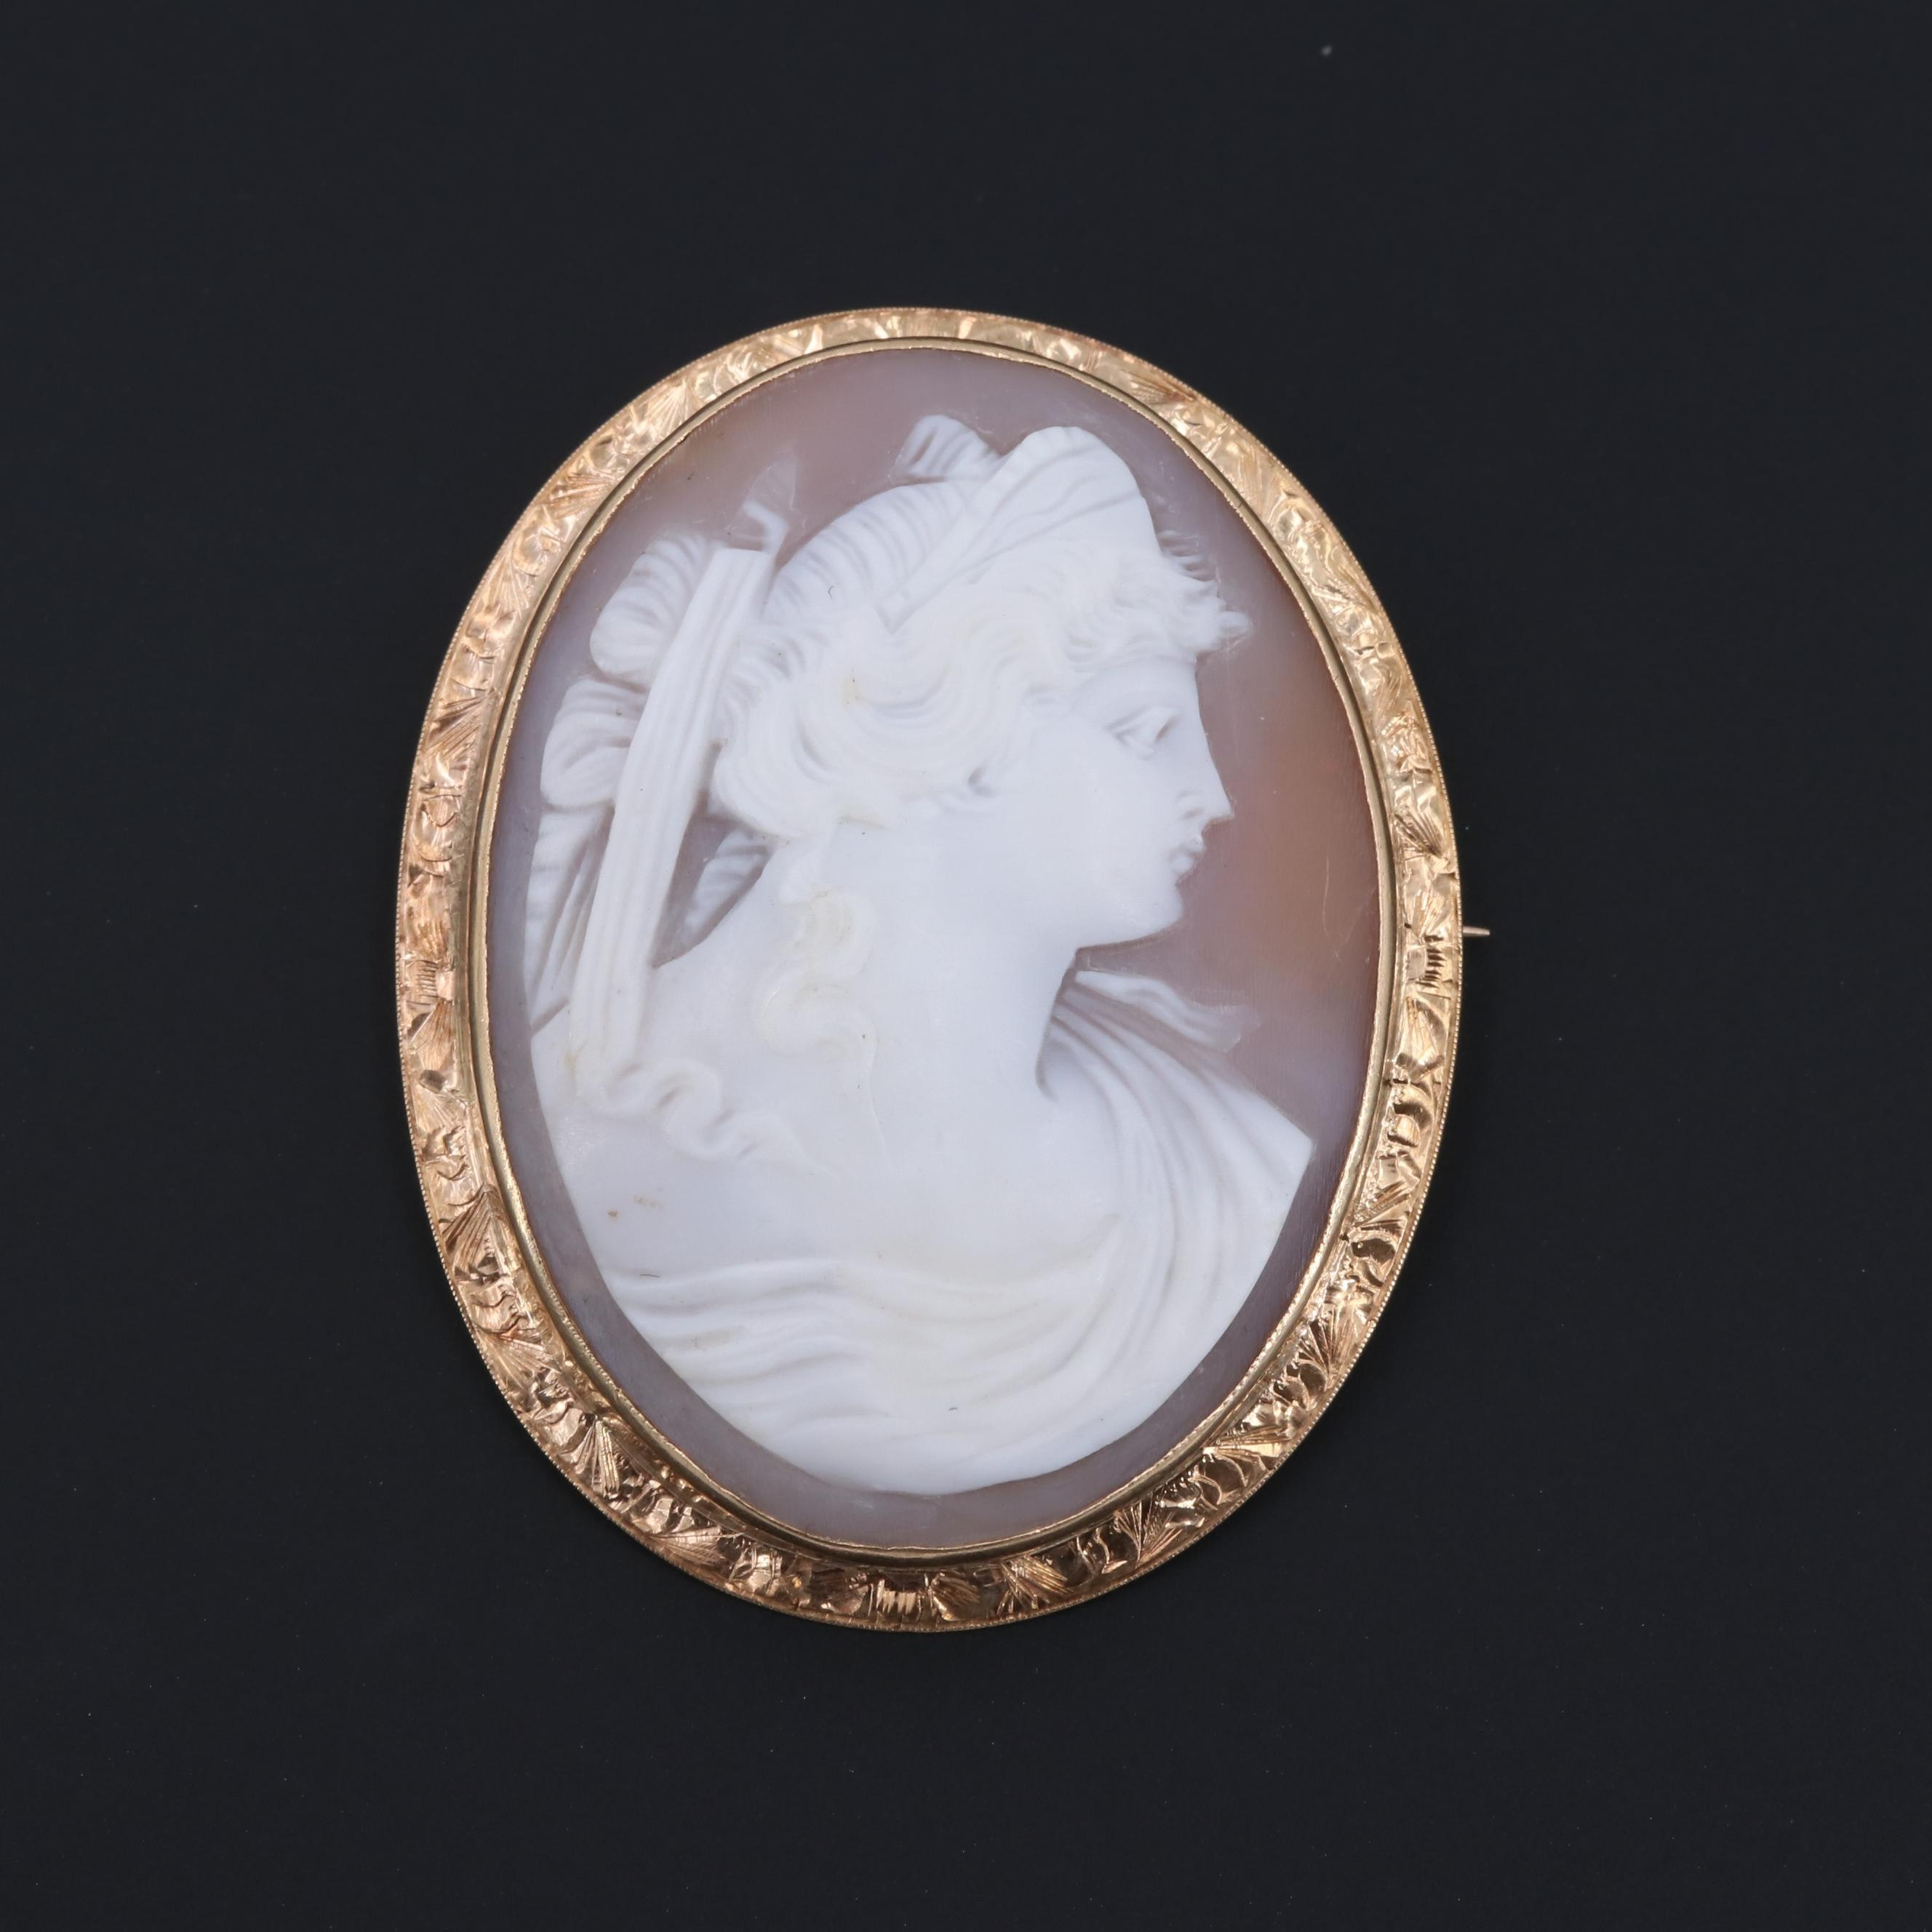 14K Yellow Gold Helmet Shell Cameo Brooch